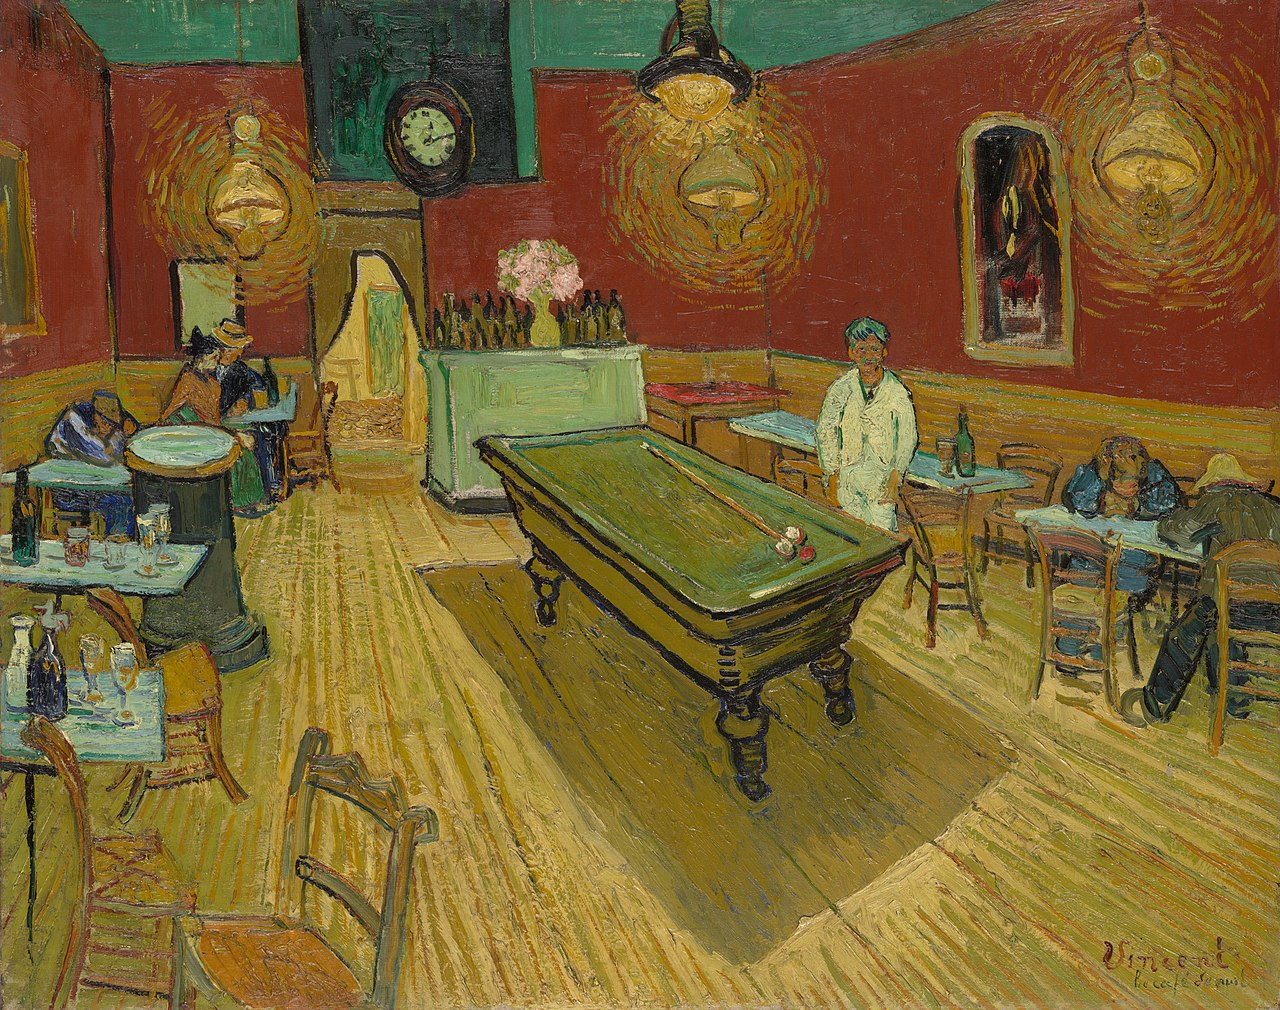 A billiard table in the centre of a room of a café surrounded by tables. Patrons are seated at several tables, and a man dressed in white stands behind the billiard table.